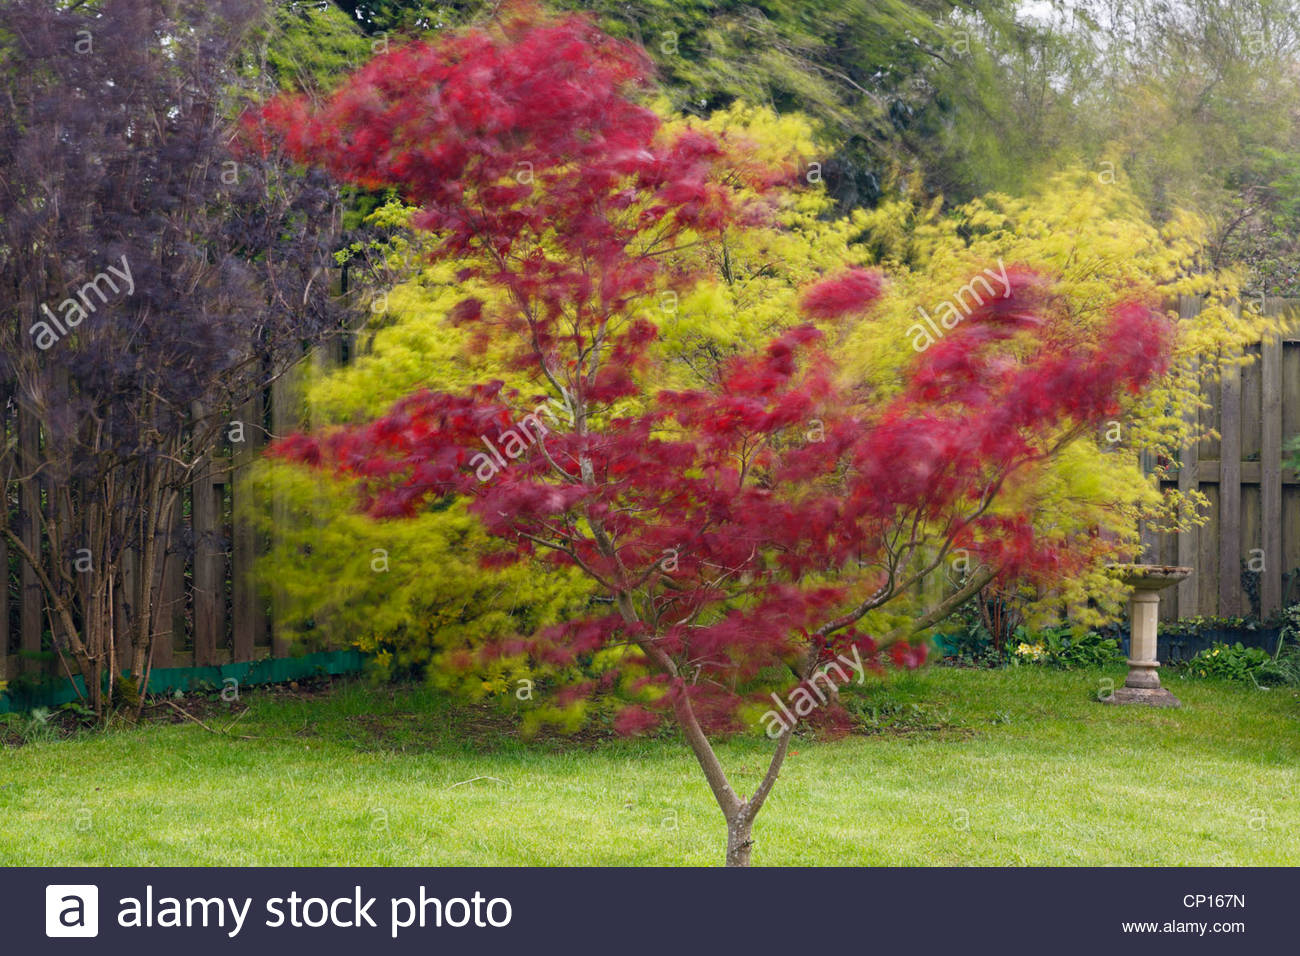 roter japanischer ahorn baum acer palmatum 39 atropurpureum 39 blowing in the wind in einem garten. Black Bedroom Furniture Sets. Home Design Ideas